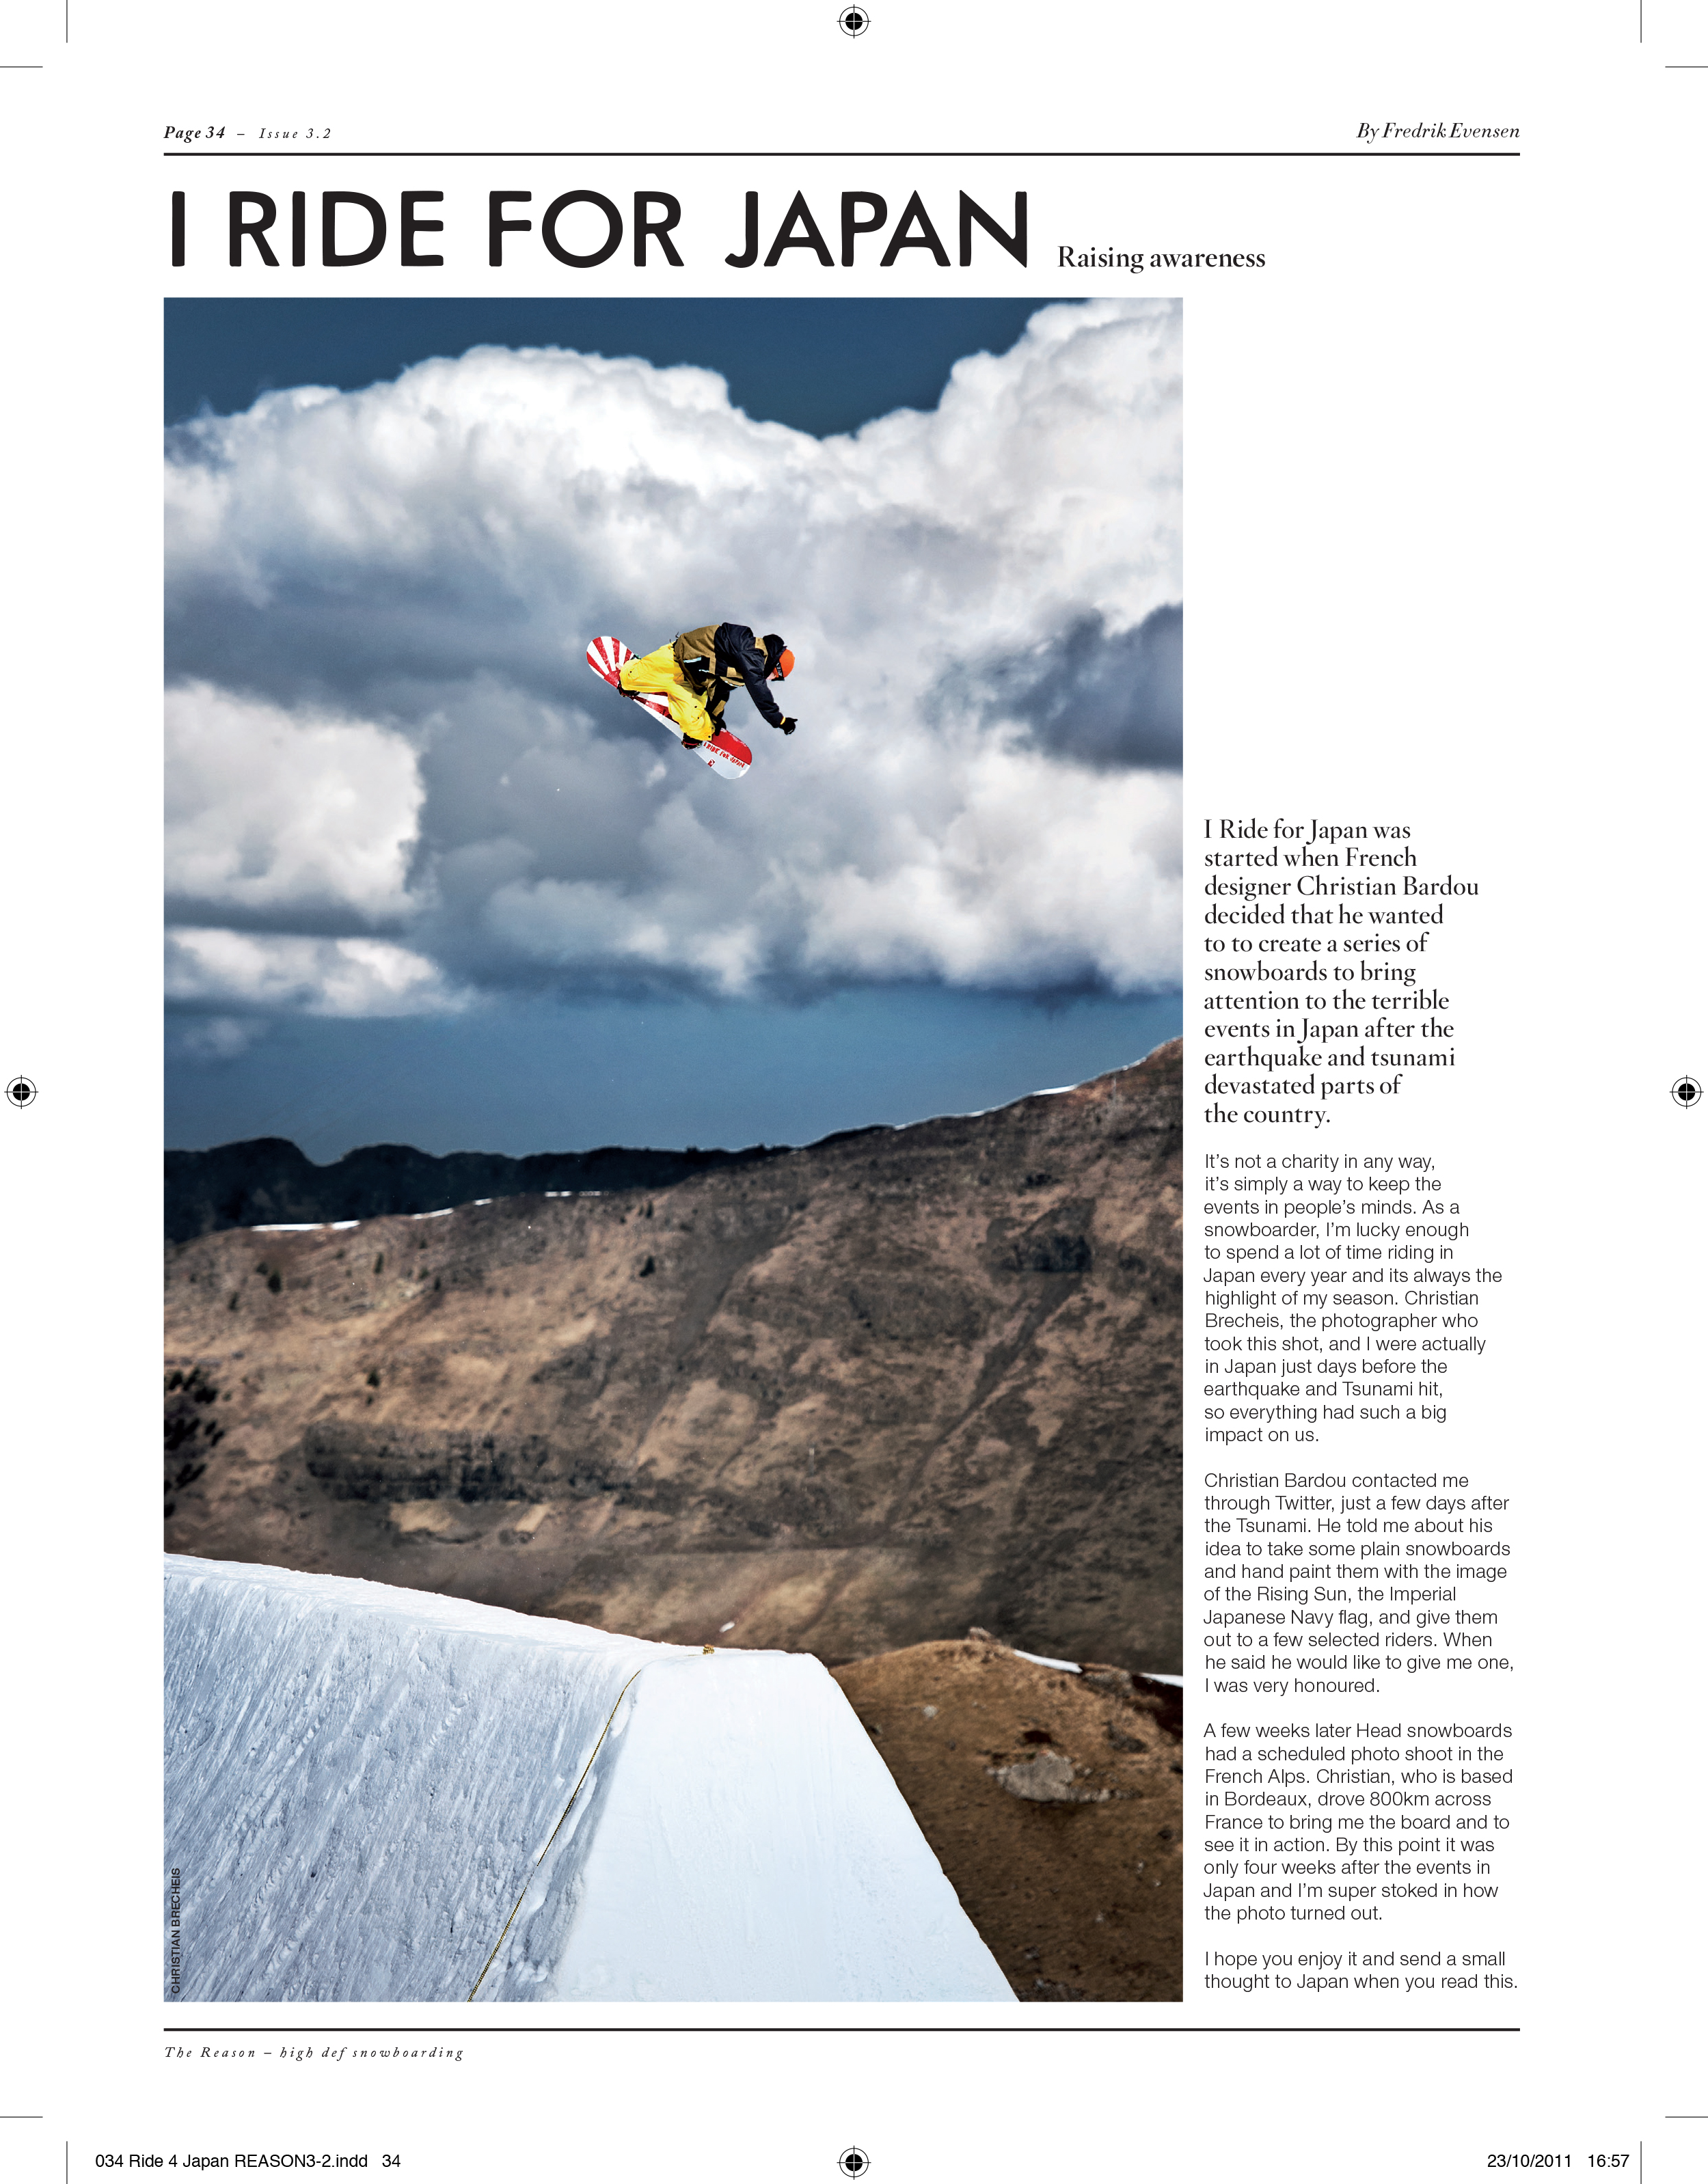 Flashback: I Ride for Japan